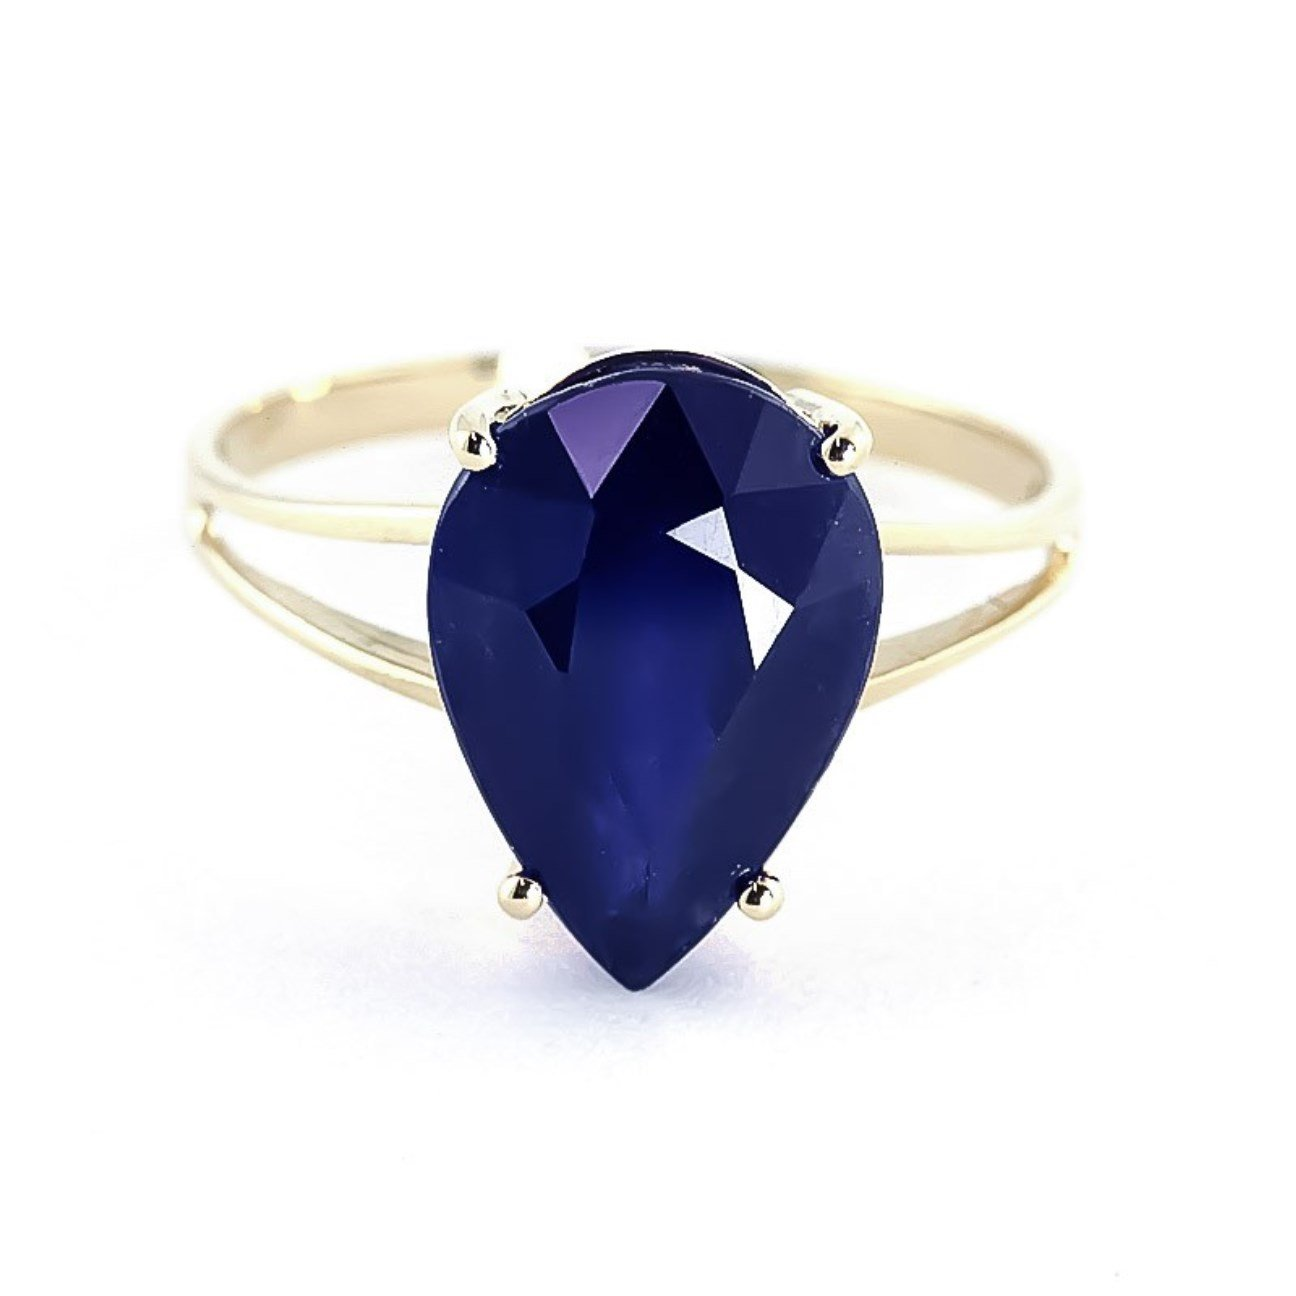 4.65 ctw 14K Solid Yellow Gold Pear Shape Sapphire September Birthstone Ring 4305-Y